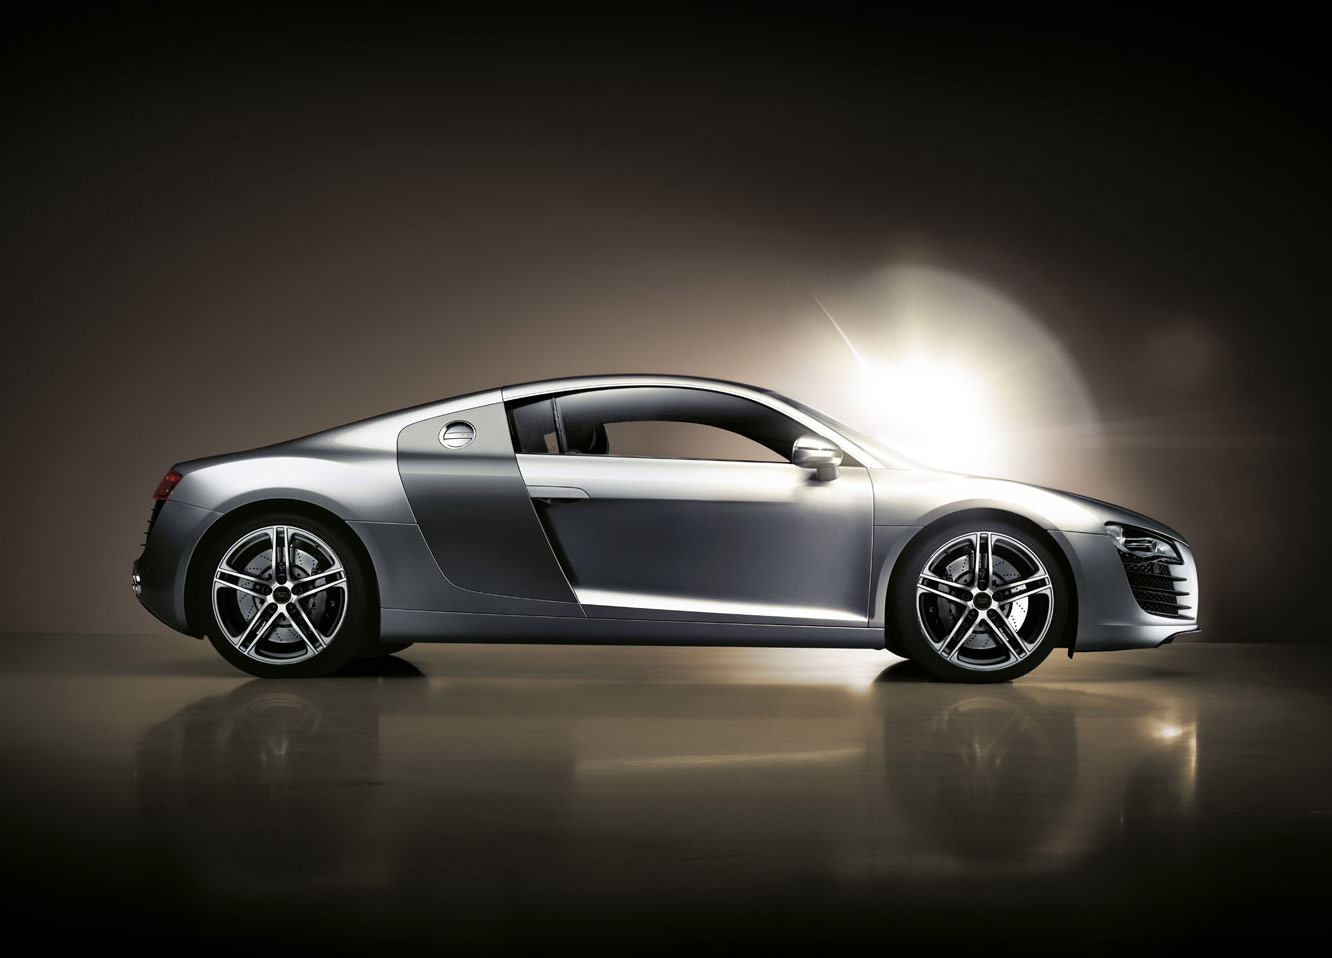 and you can free download all wallpapers of audi car